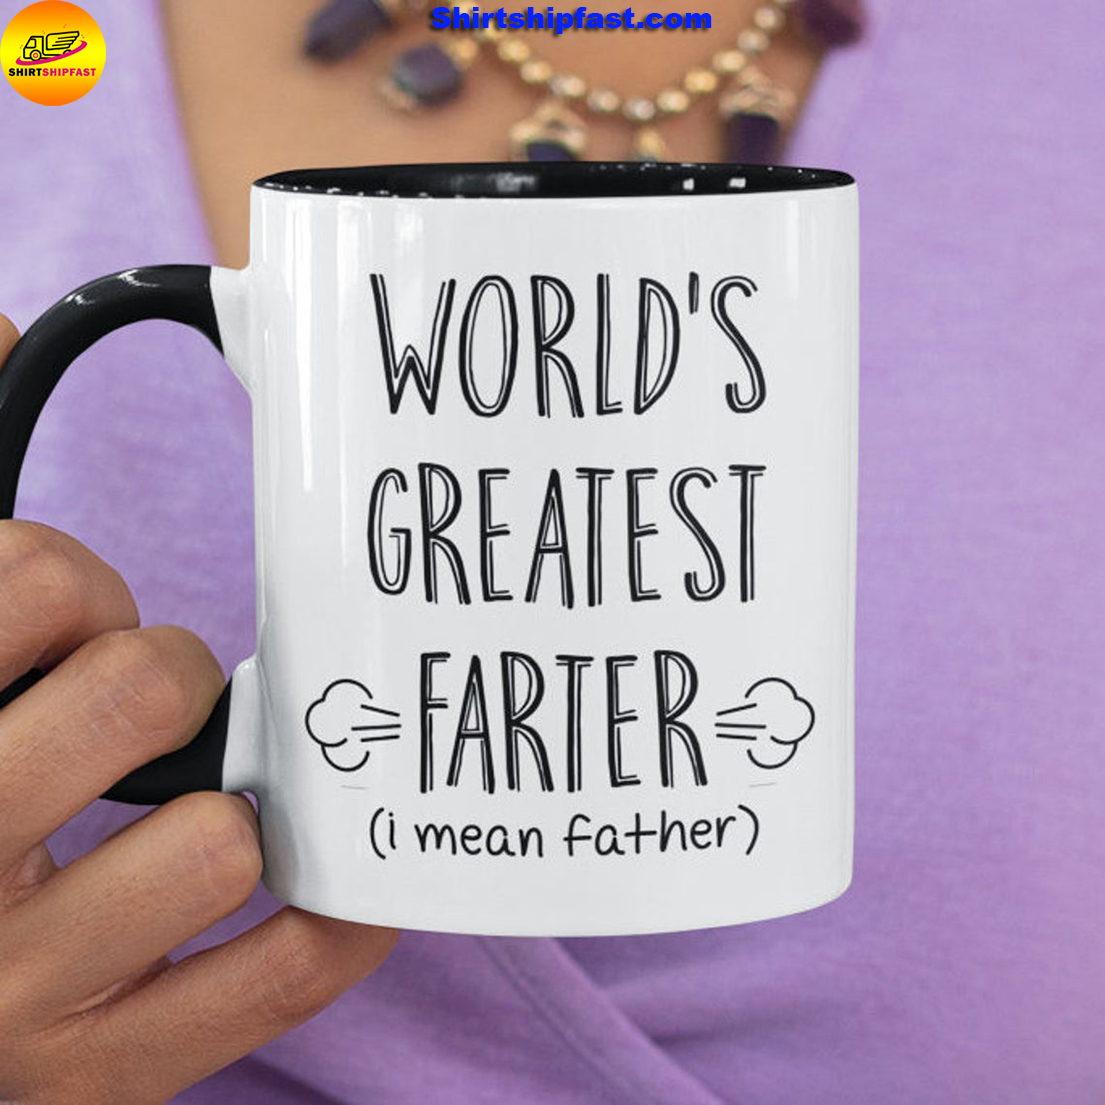 World's greatest farter i mean father mug - Picture 1